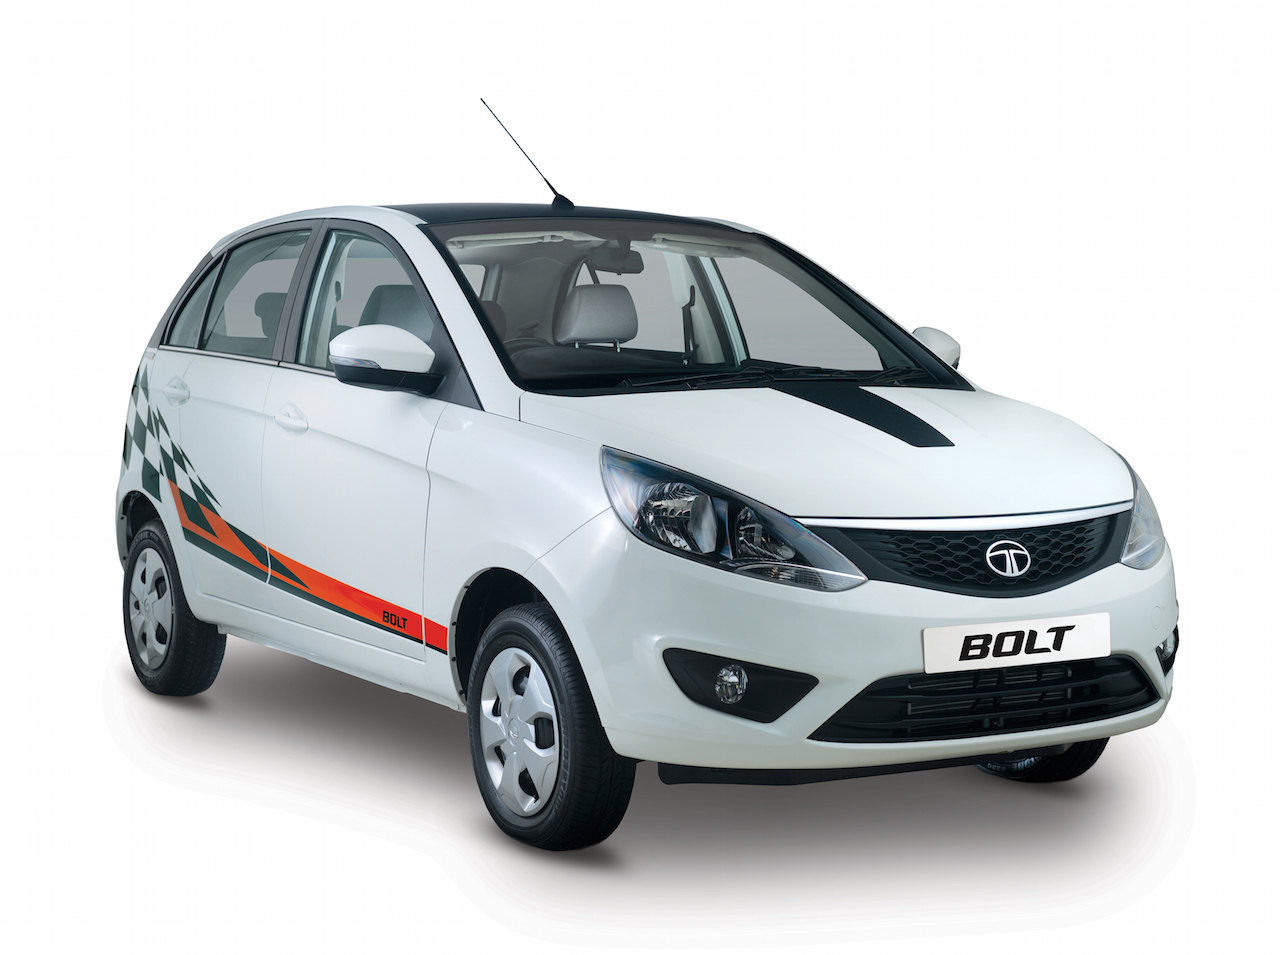 All Tata Car Models With Price